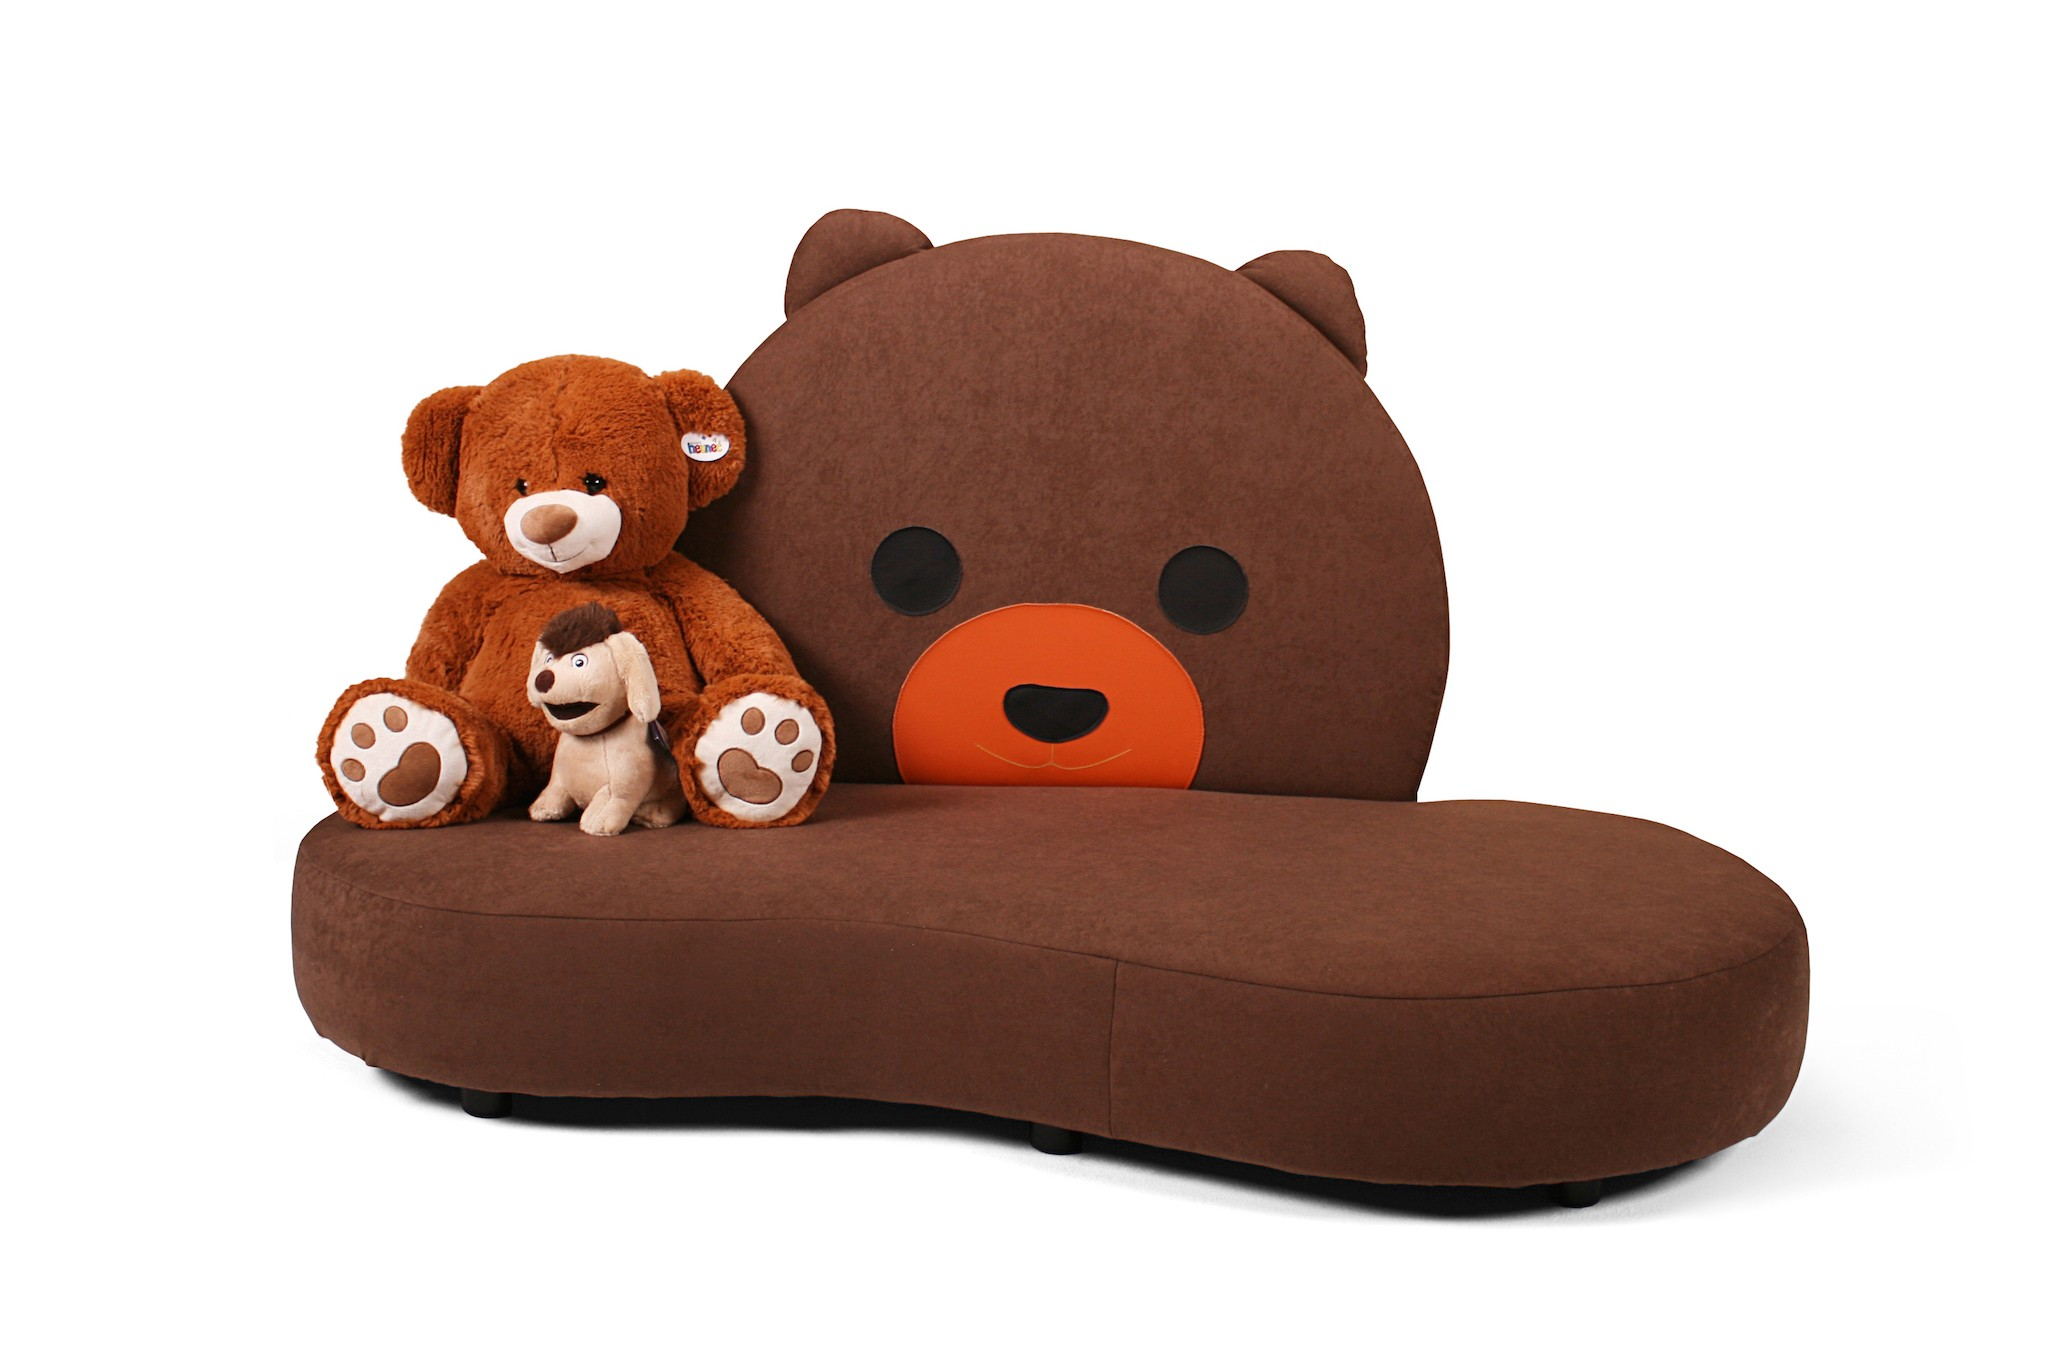 kindersofa mit teddy motiv kuschelinsel kinic kindersofas. Black Bedroom Furniture Sets. Home Design Ideas